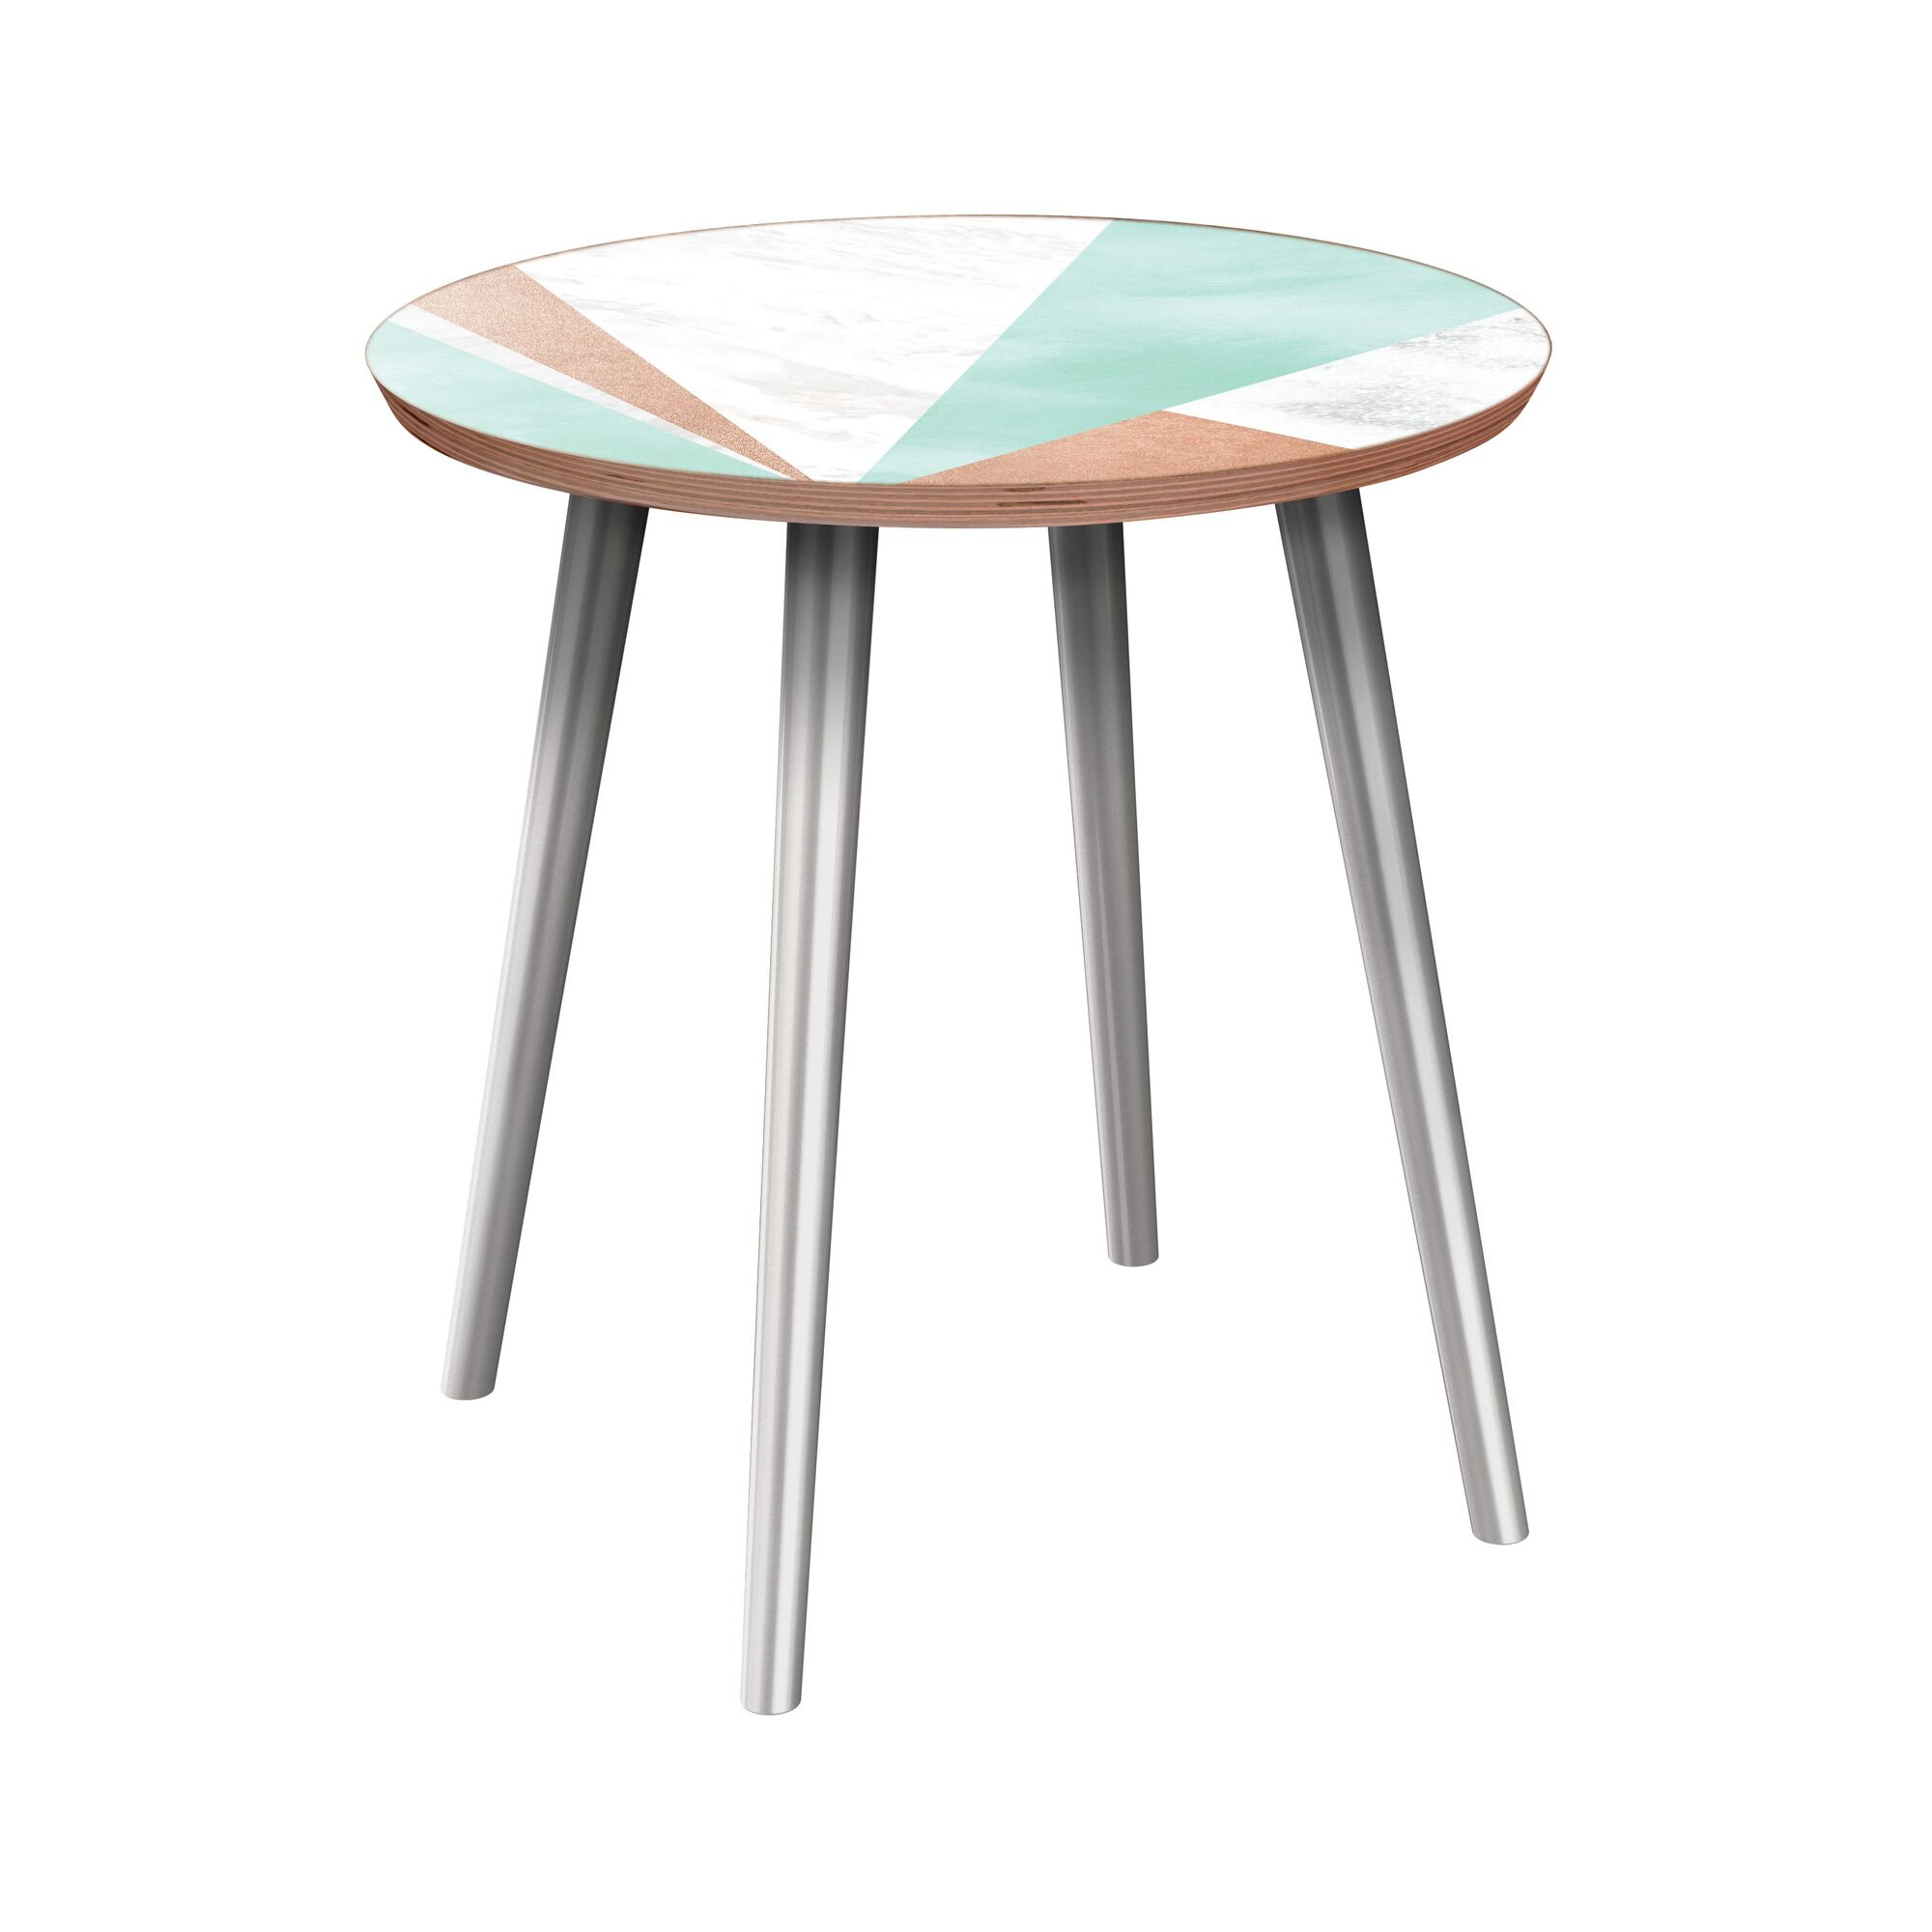 Eleah End Table Table Base Color: Chrome, Table Top Color: Walnut